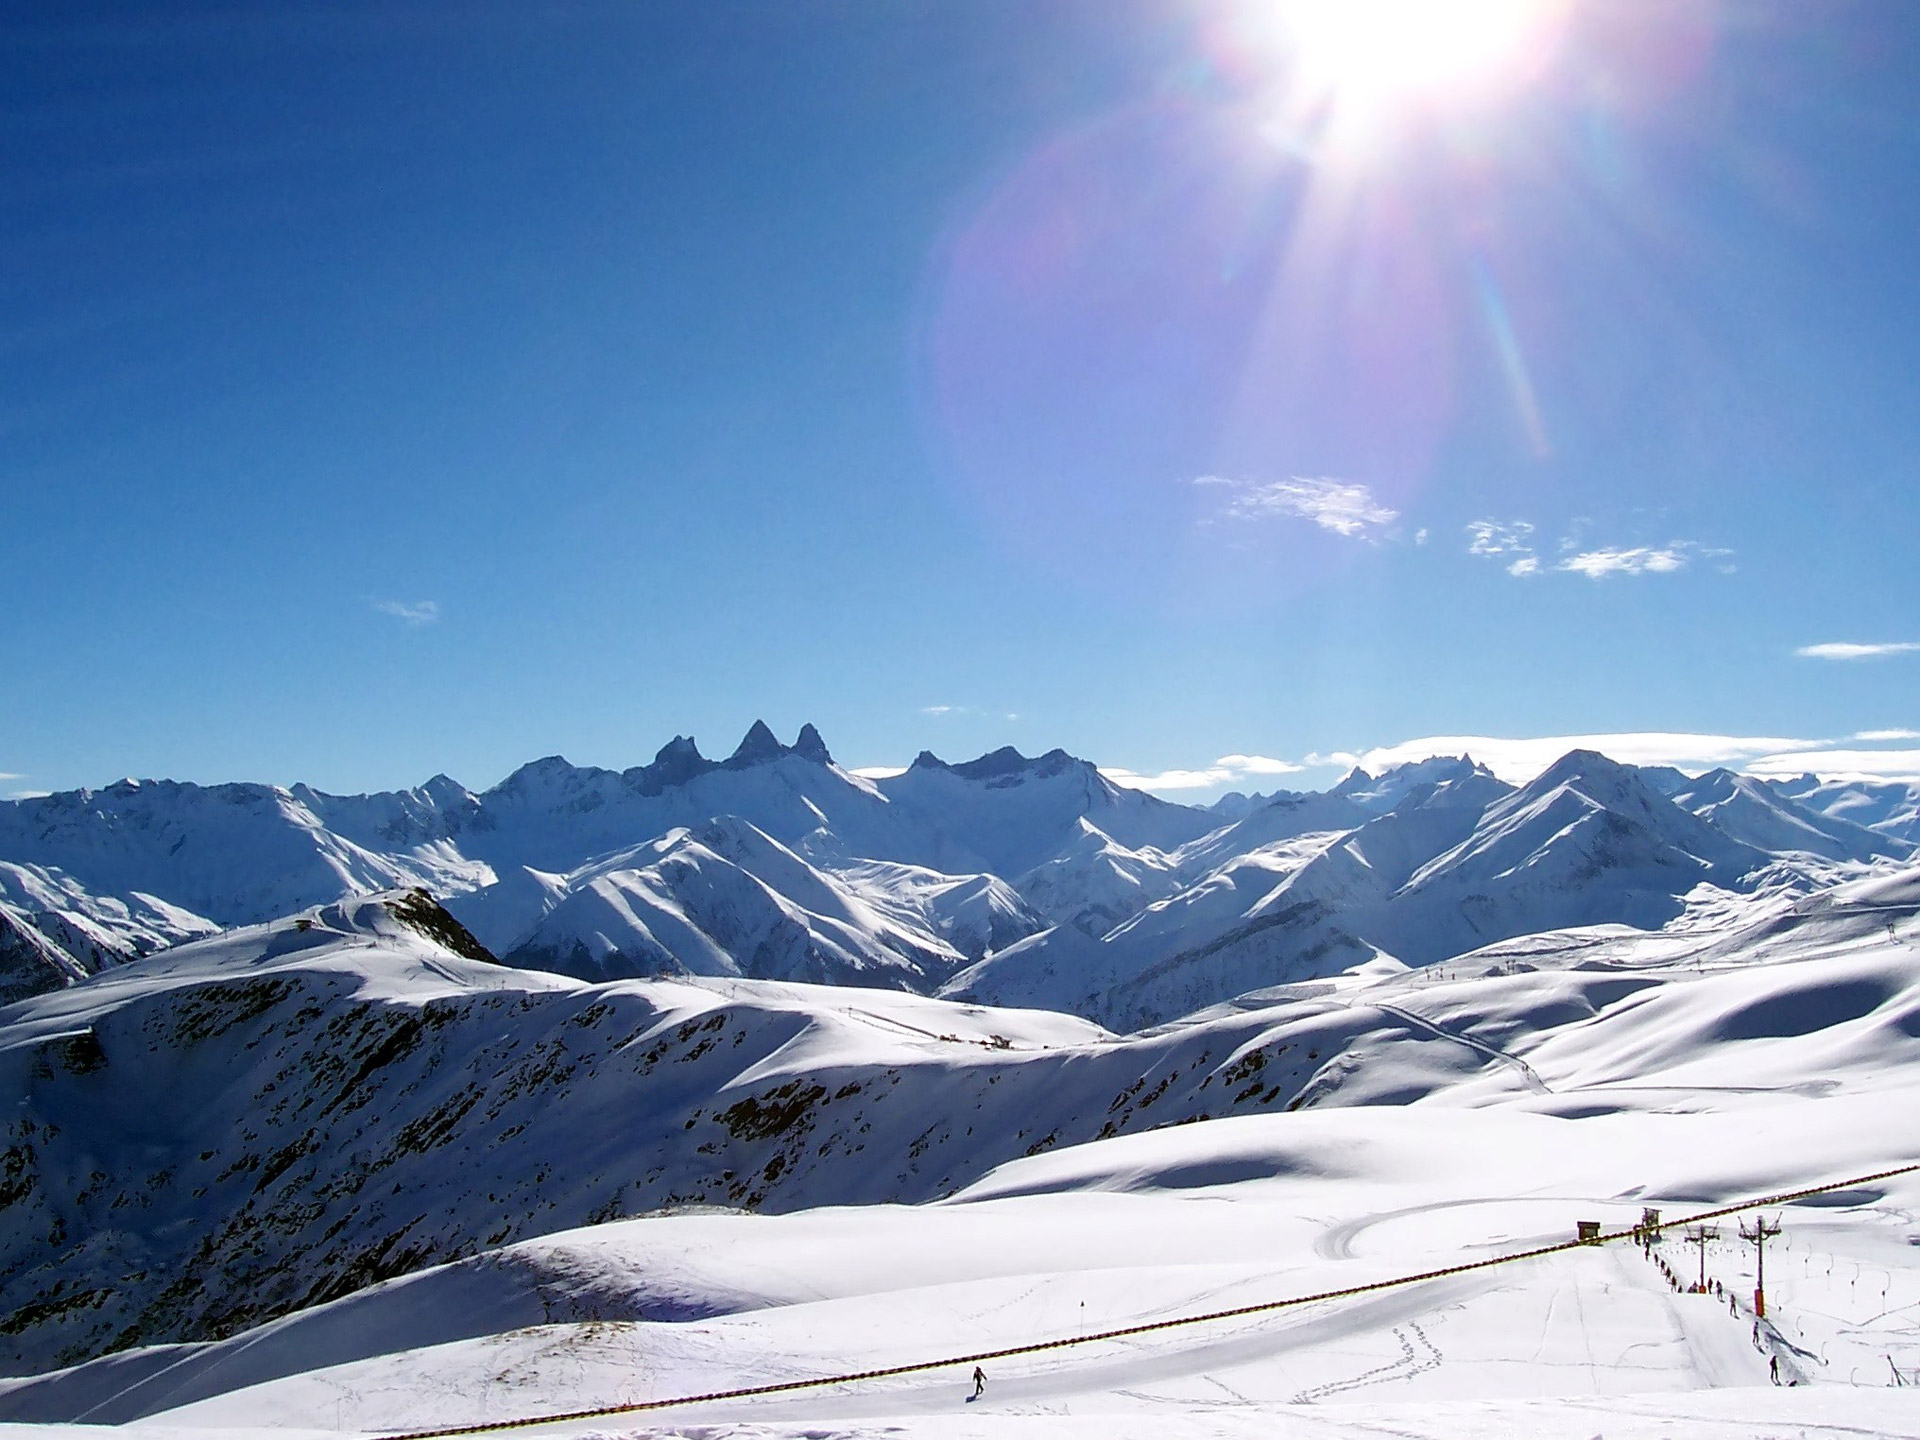 Shutterstock Hd Wallpapers Winter Mountains Free Stock Photo Public Domain Pictures